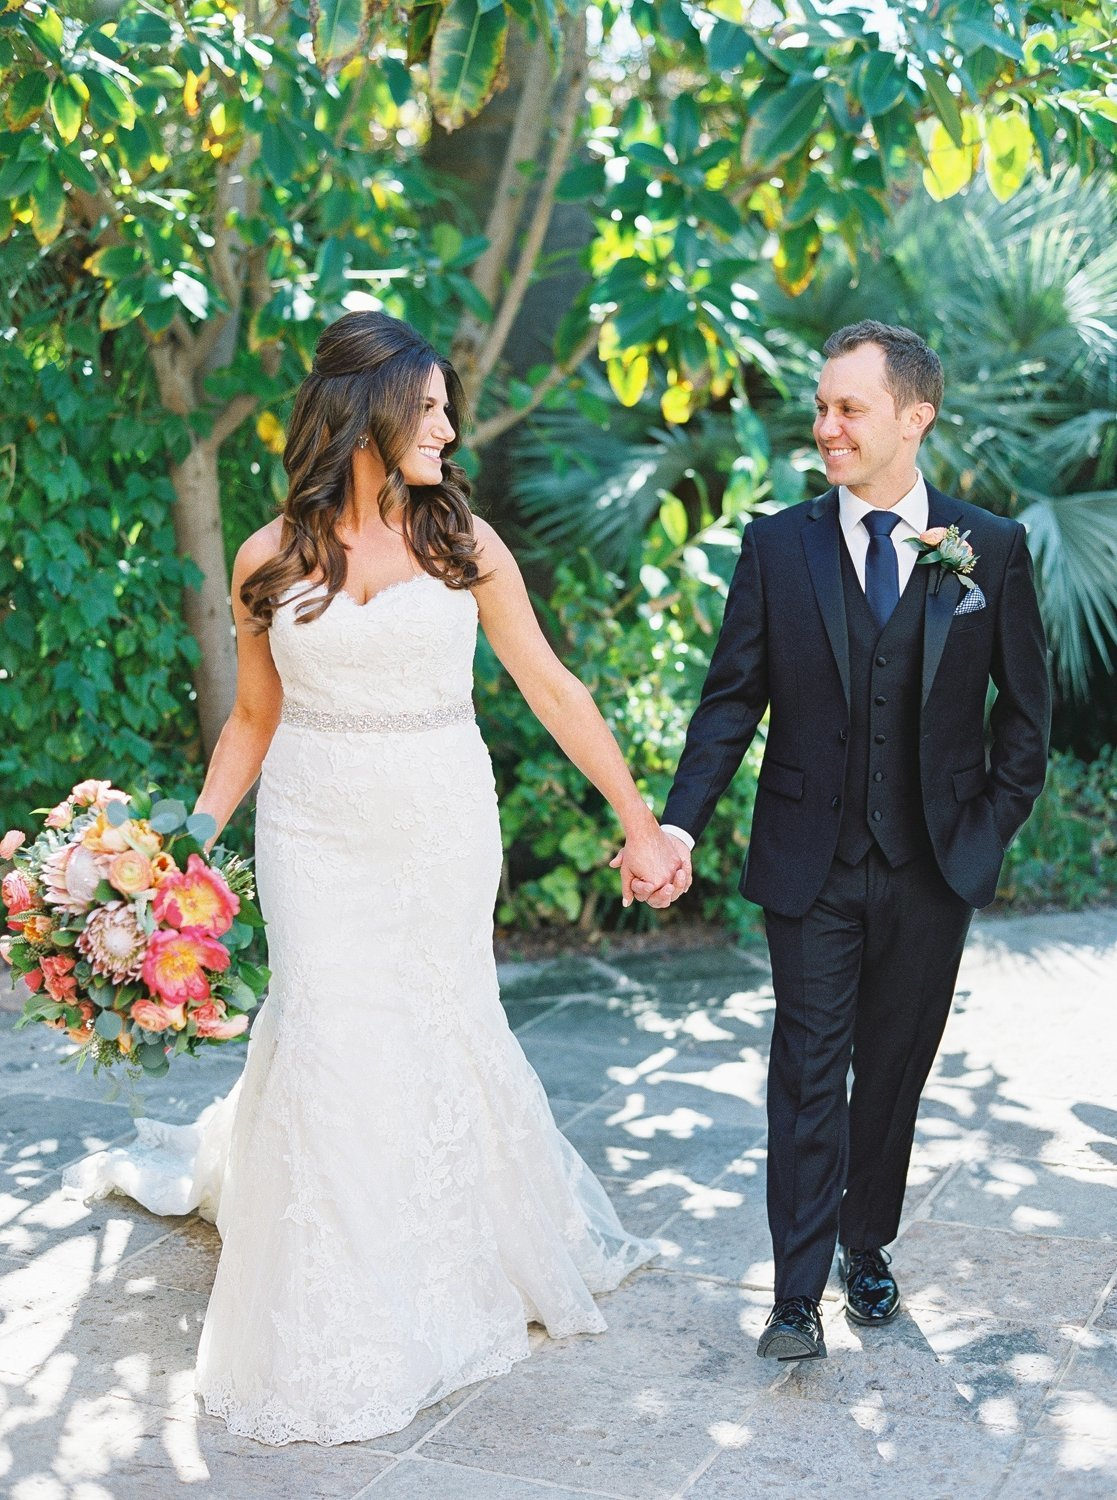 royal-palms-wedding-photographer-arizona-rachael-koscica-photography_0061